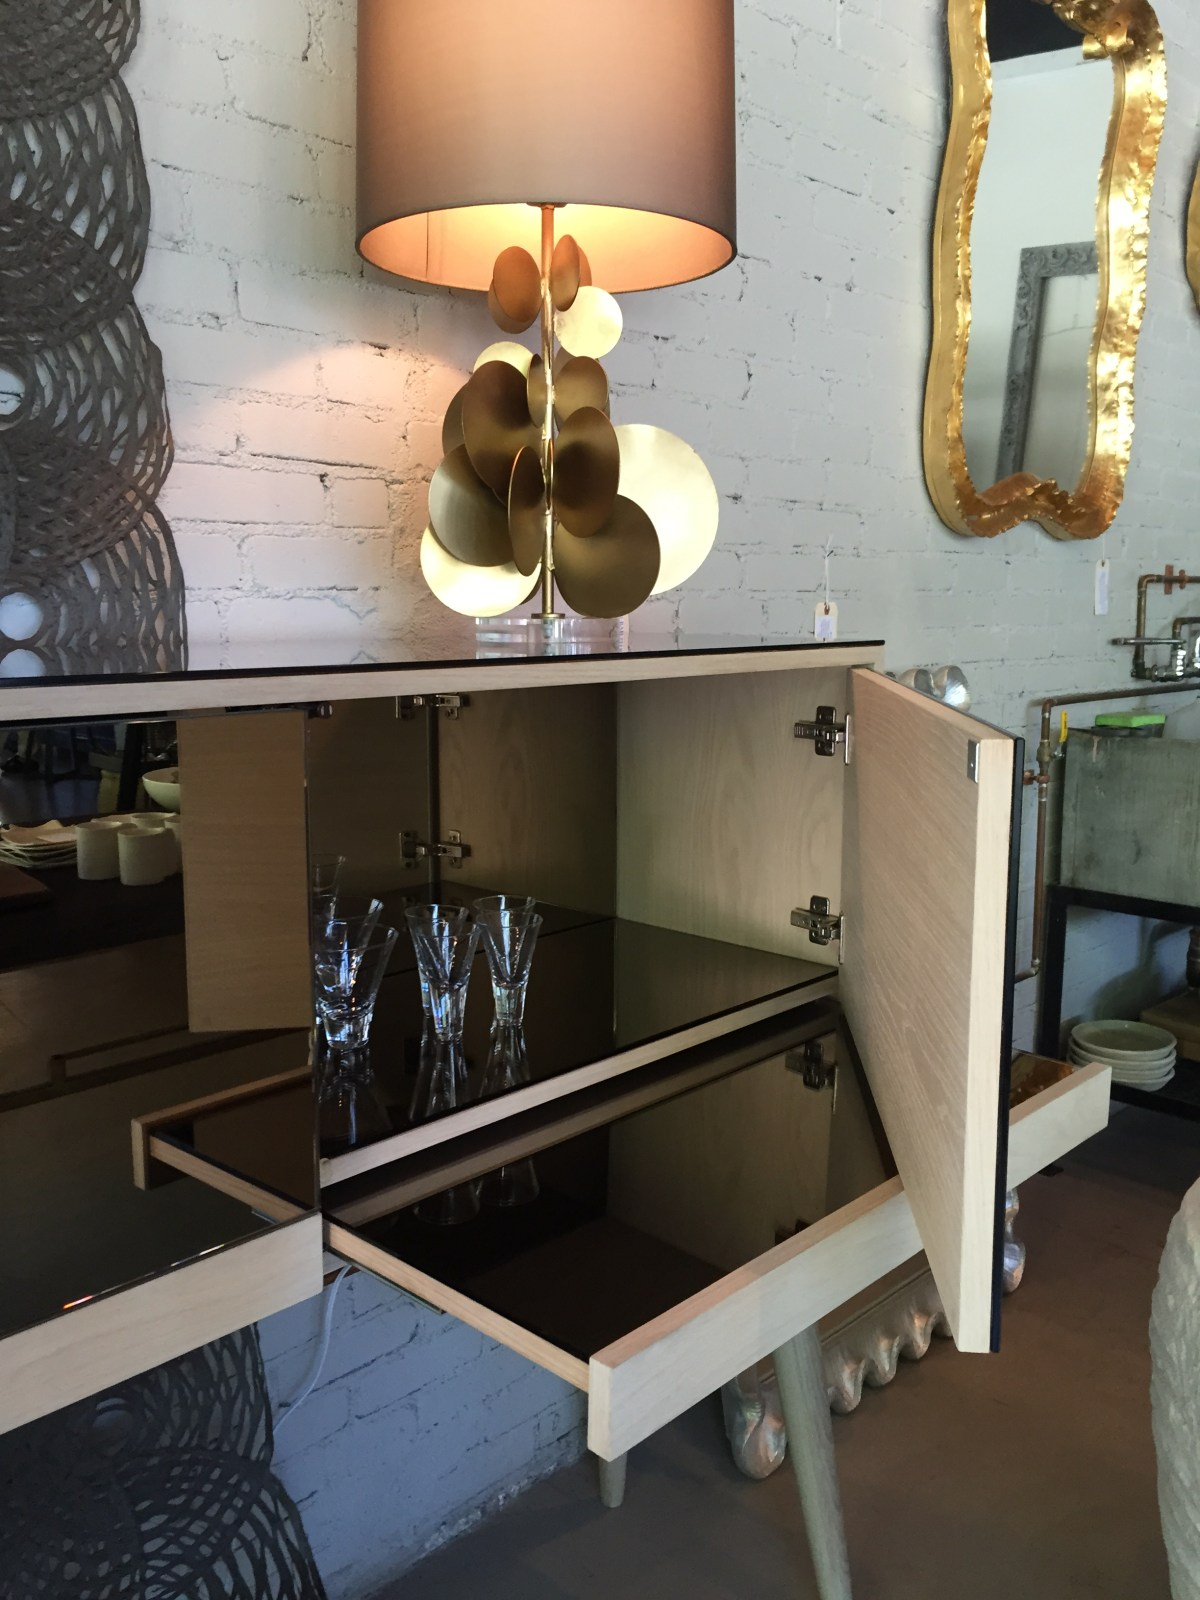 bronze-bar-mirror-drawers